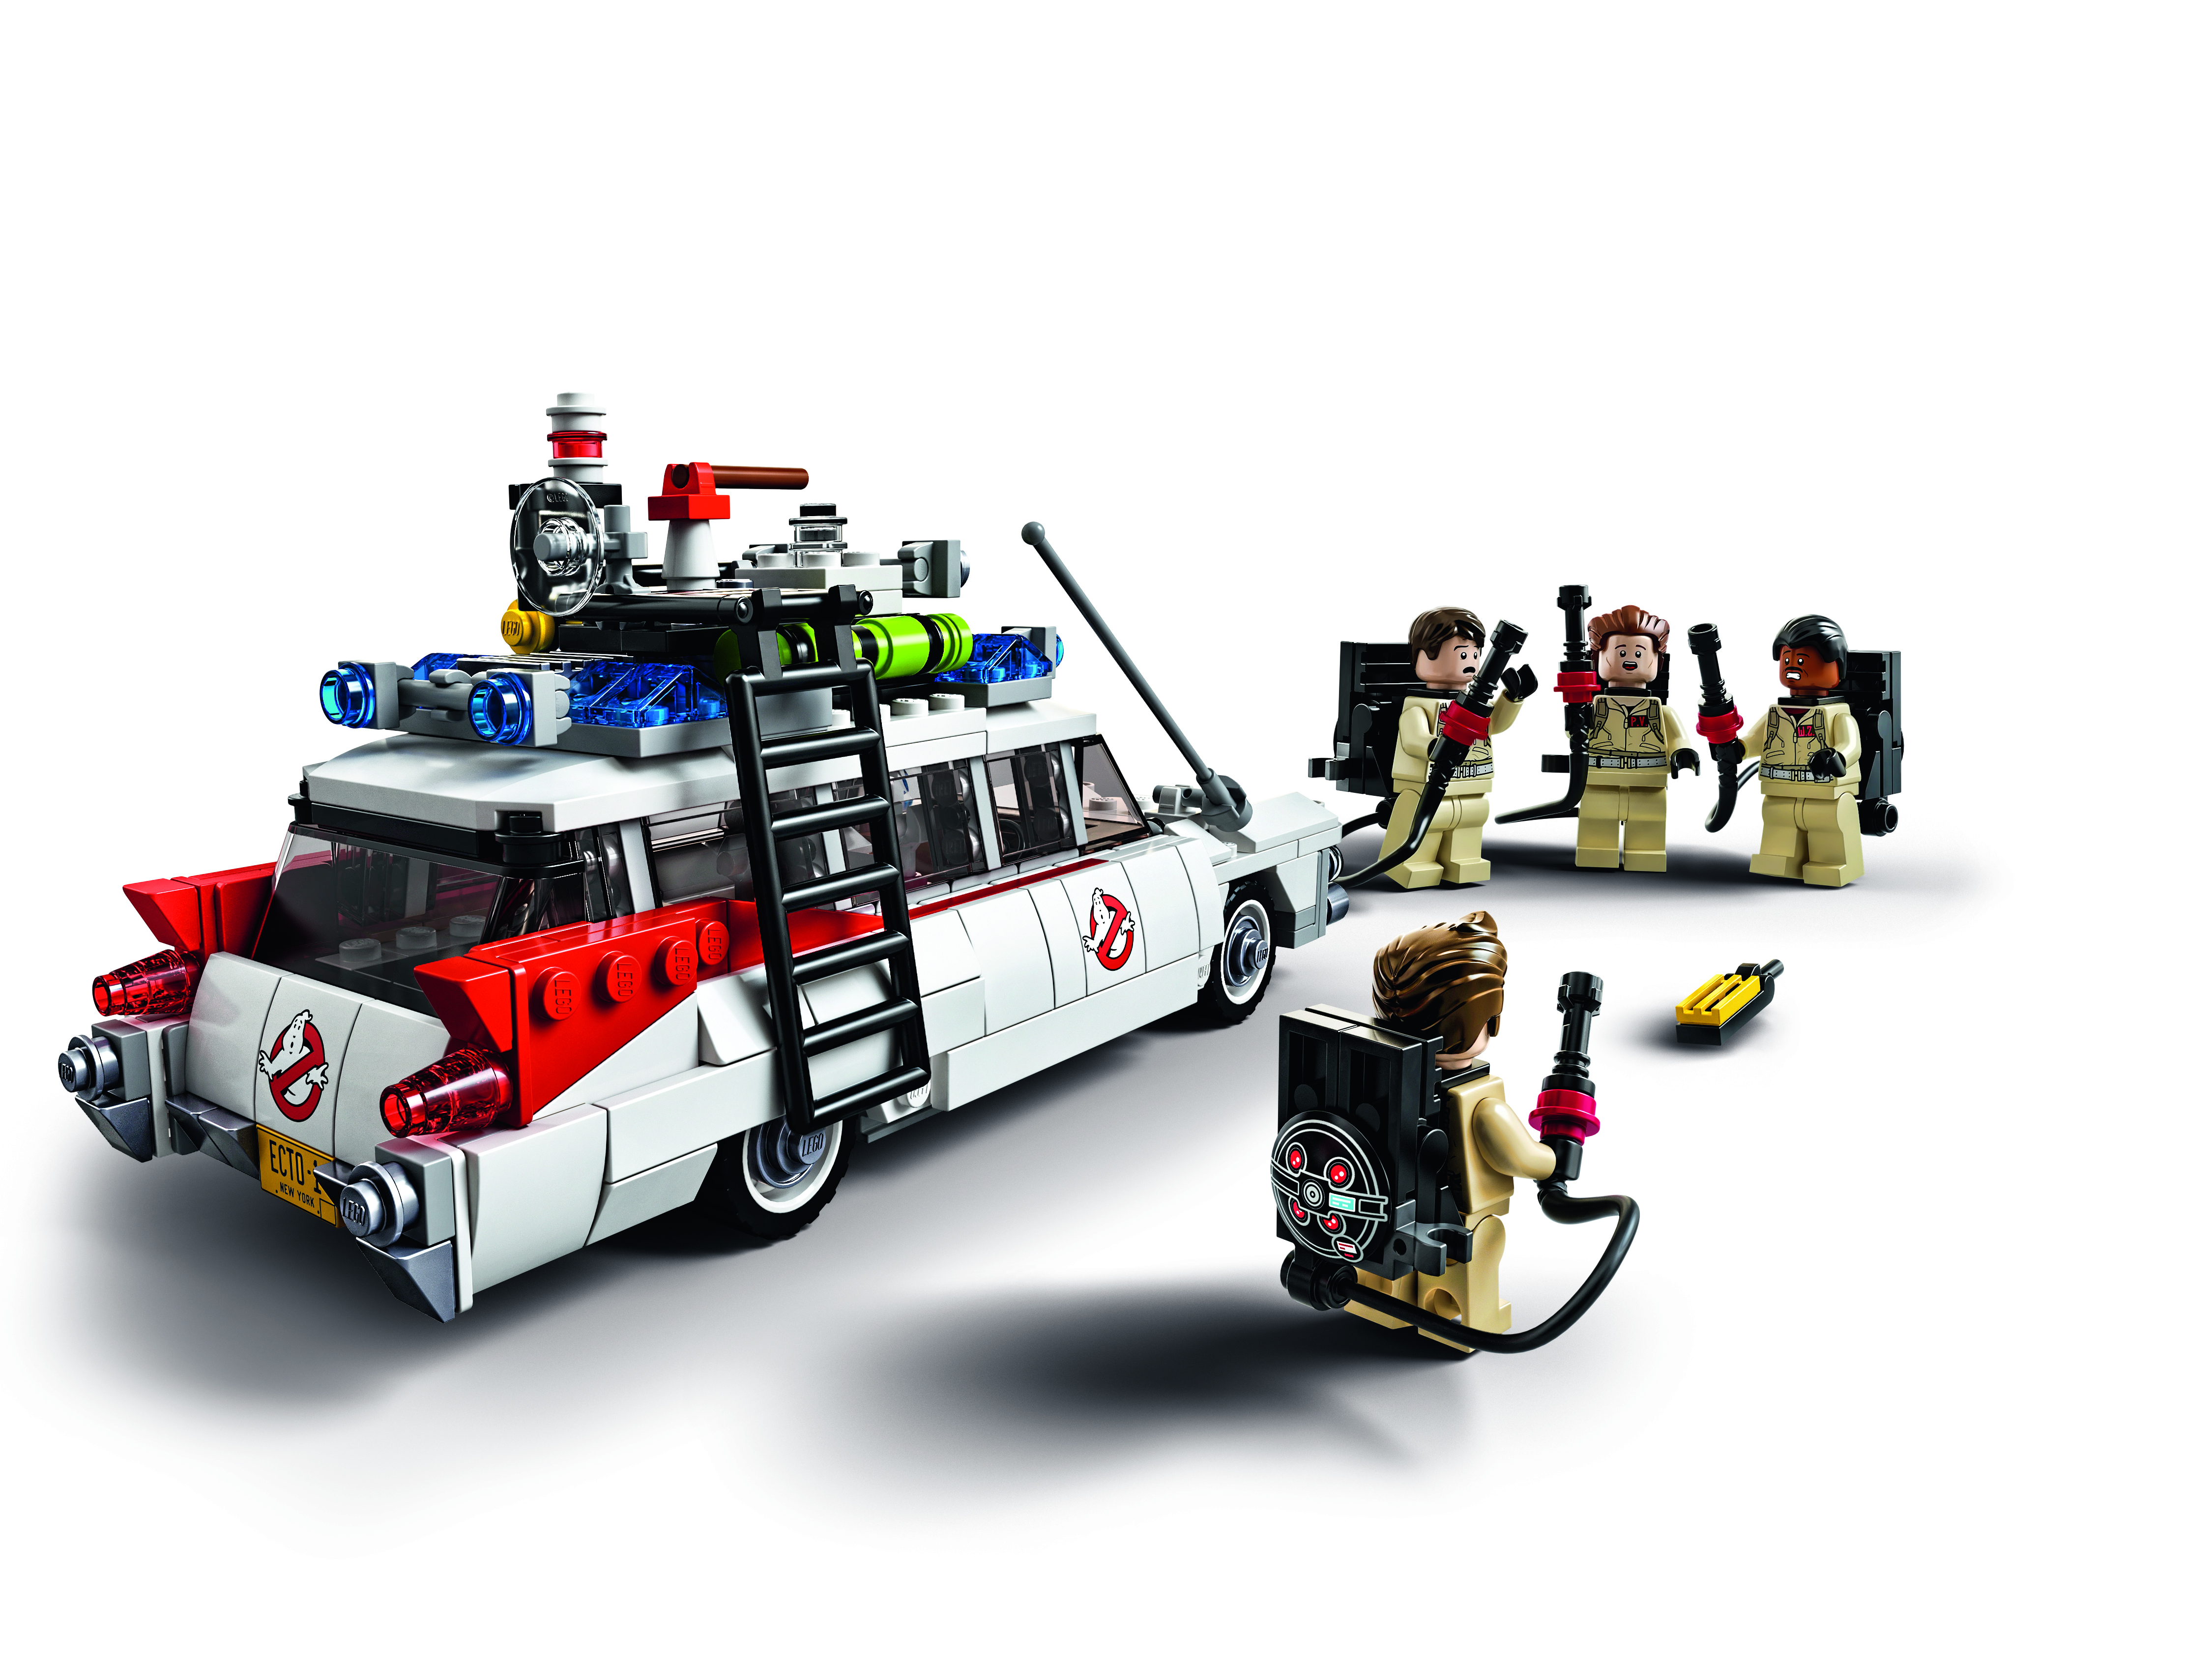 official-ghostbusters-lego-set-photos-03